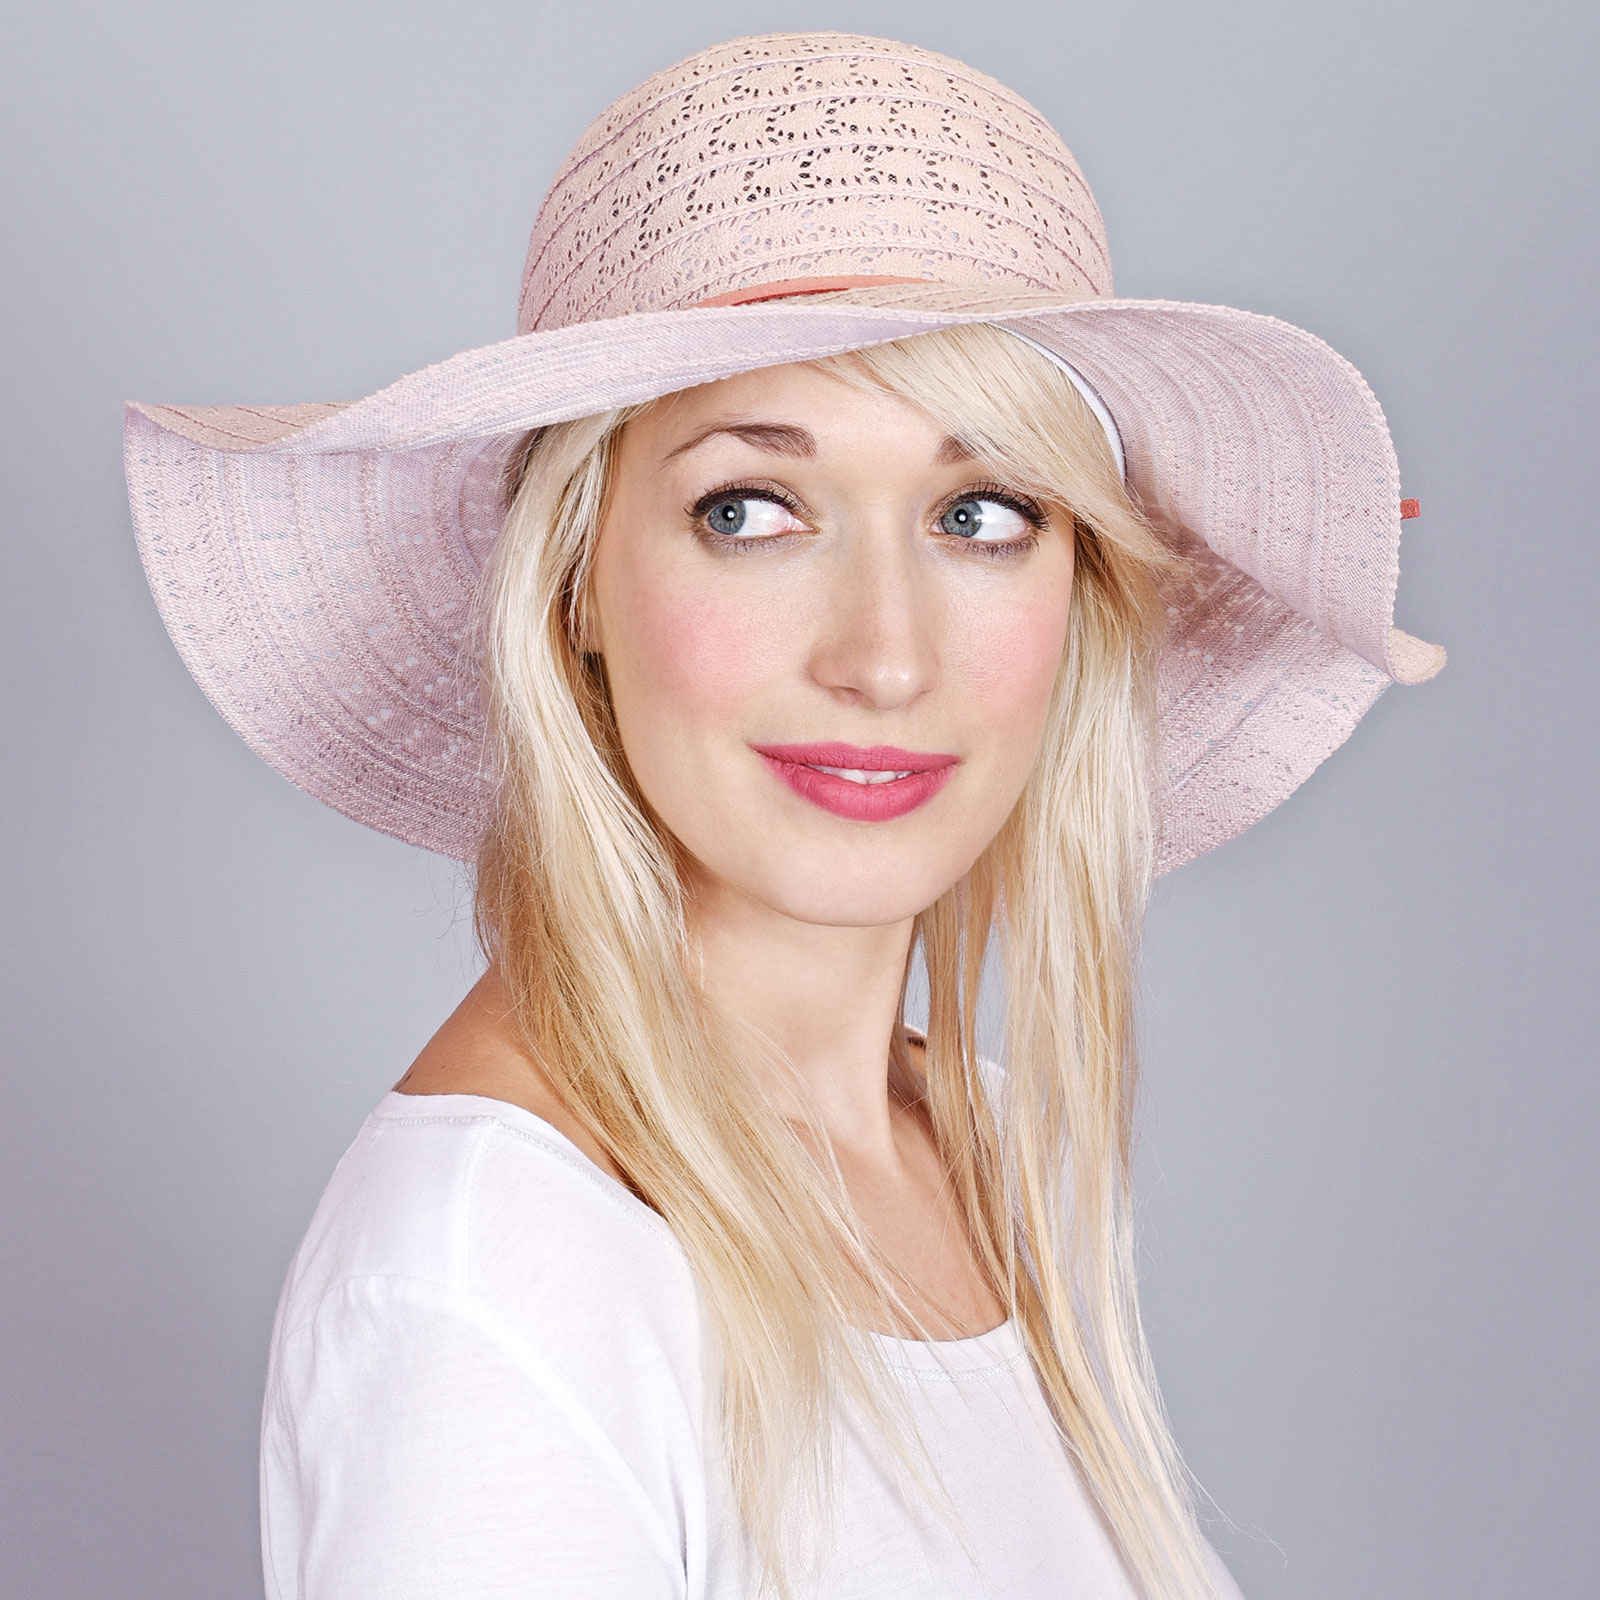 CP-00890-VF16-1-chapeau-femme-rose-larges-bords